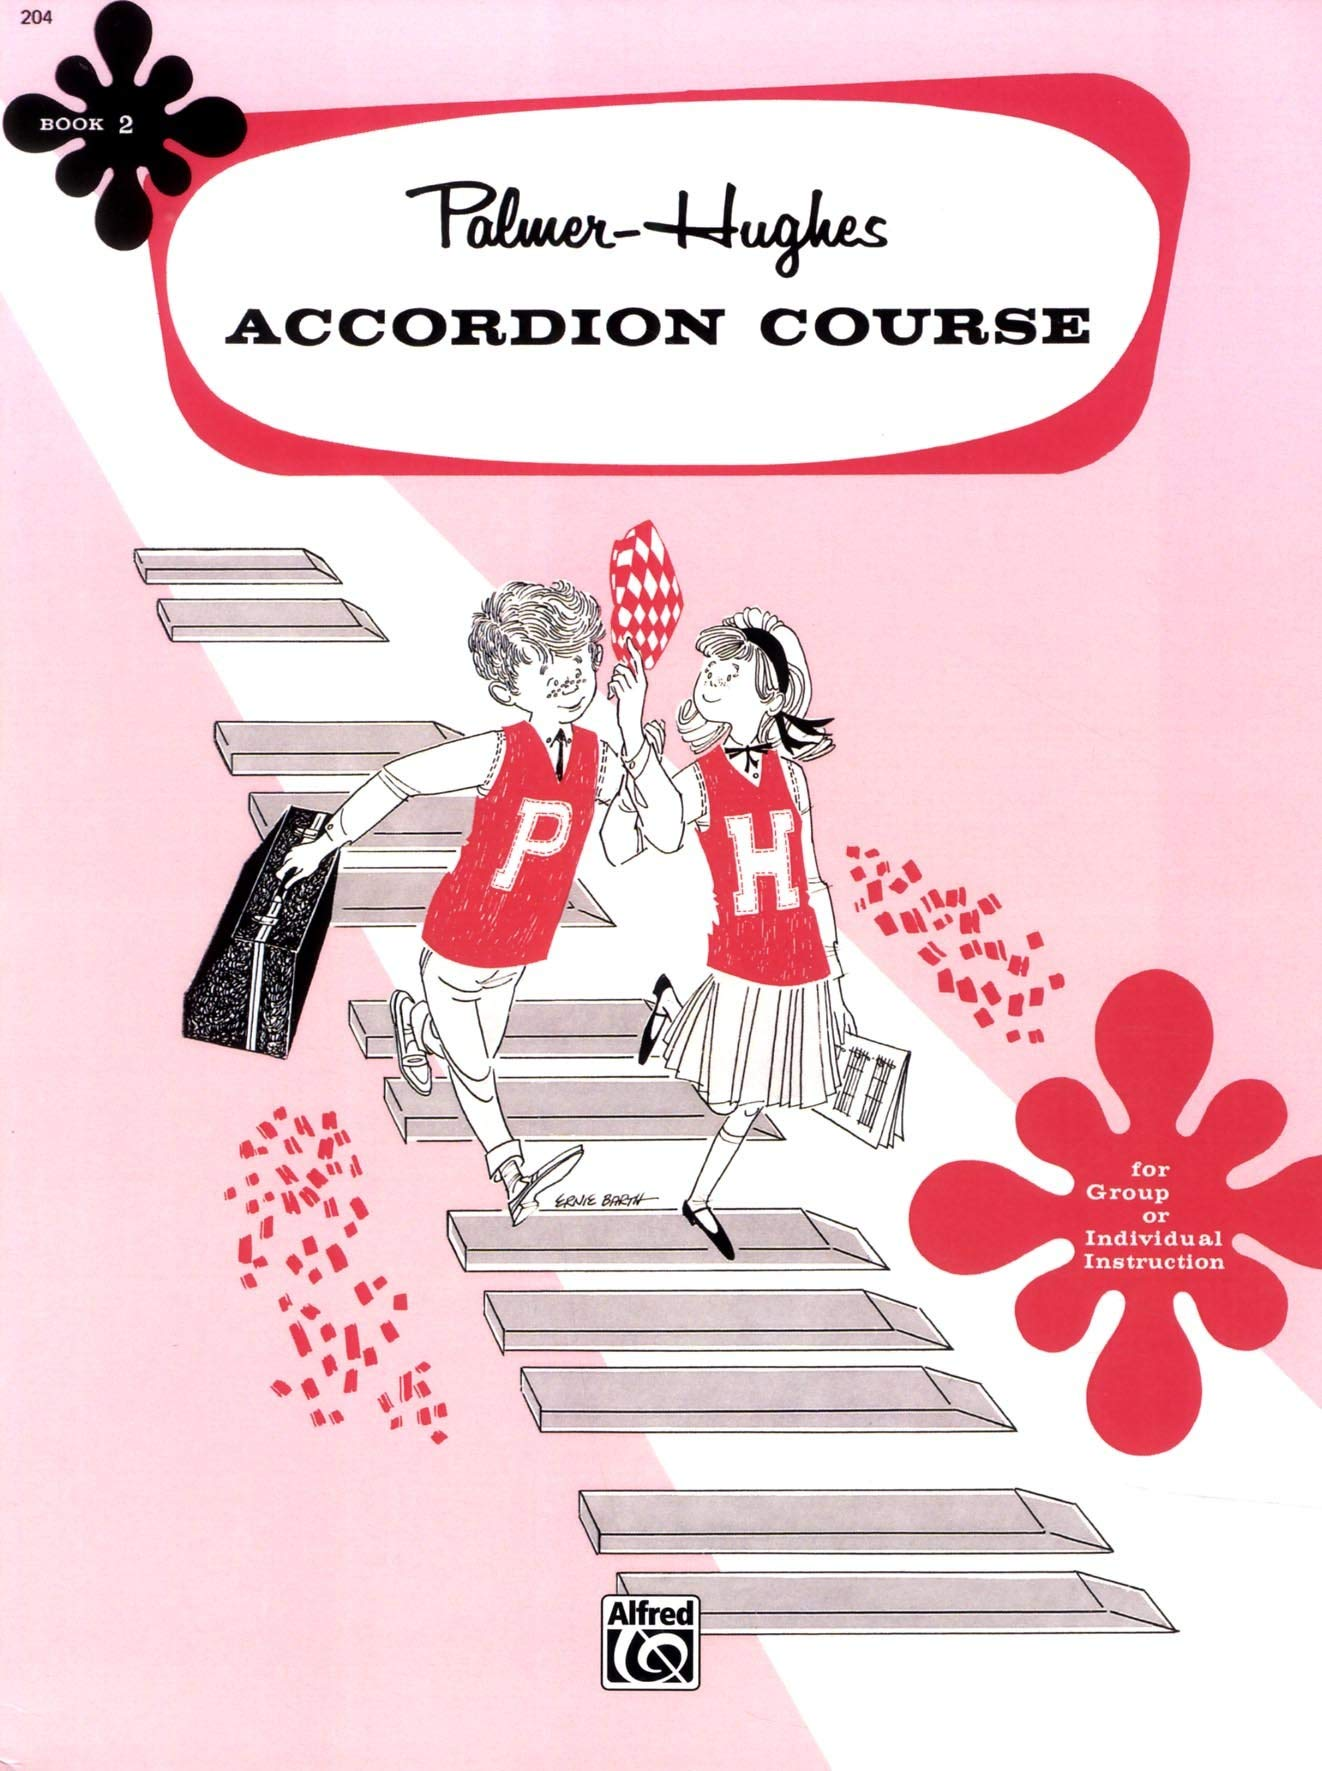 Palmer-Hughes Accordion Course 1 Learn to Play Accordion SHEET MUSIC BOOK